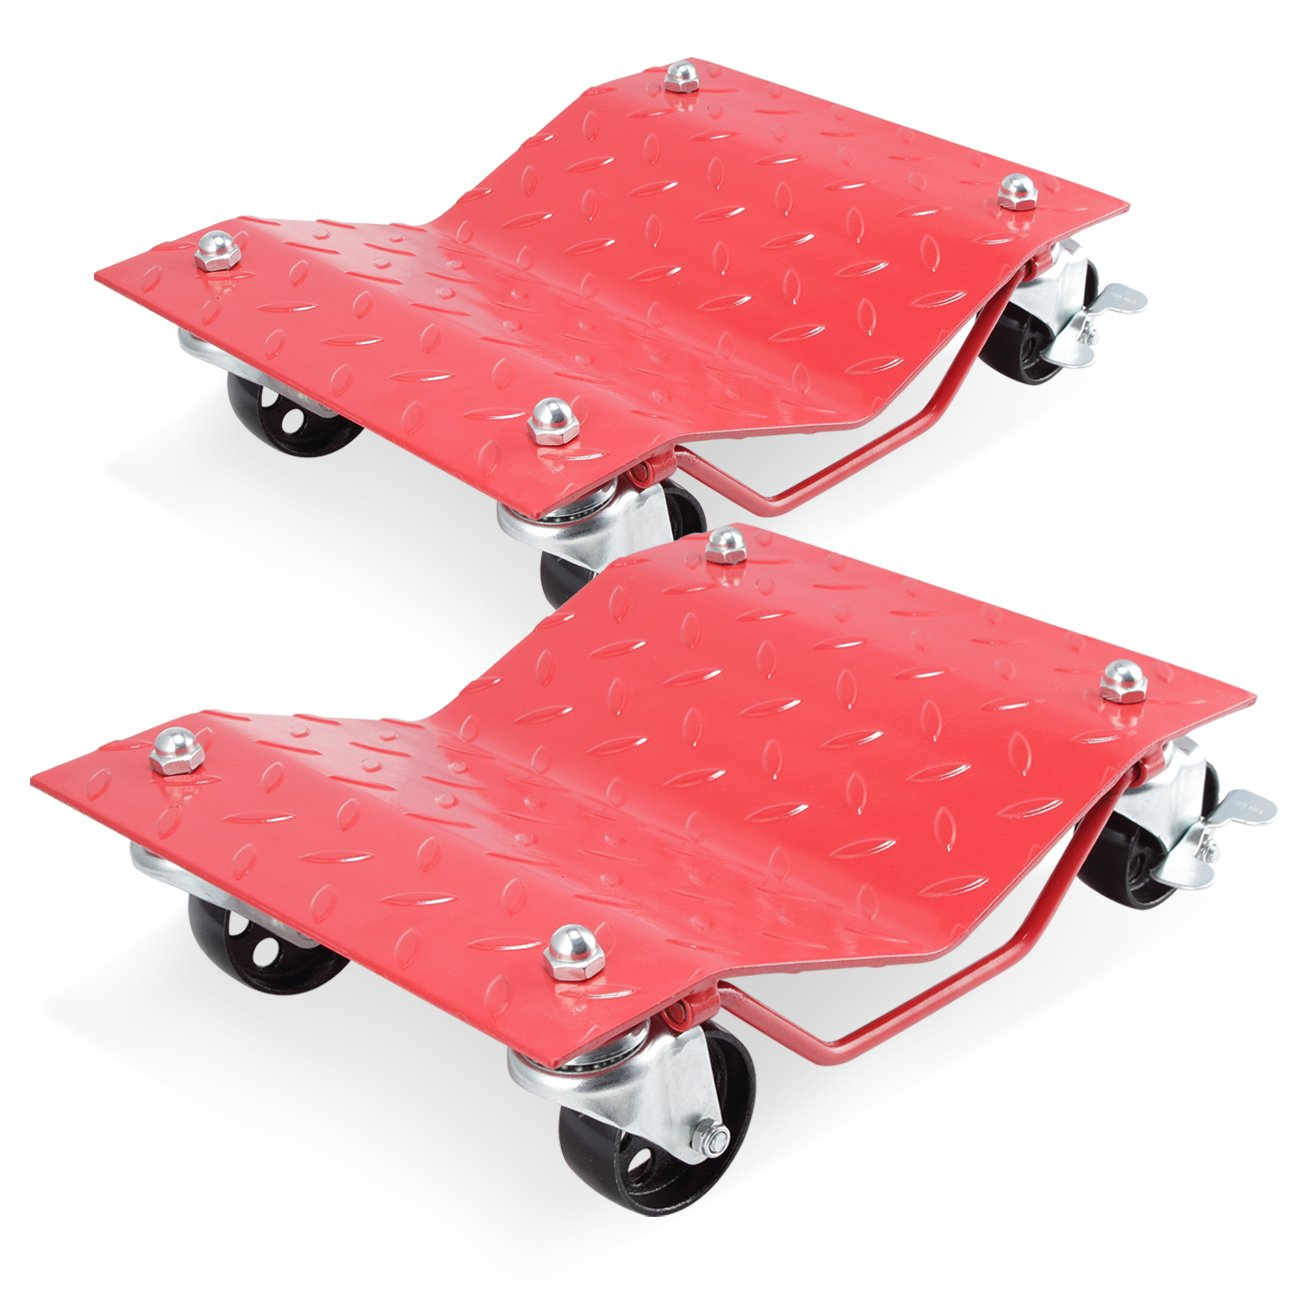 ARKSEN 2 Pack Set Heavy Duty Dollies Car Auto Repair Dolly Tire Skates Vehicle Moving Diamond w/Wheels & Lock, Red by ARKSEN (Image #1)